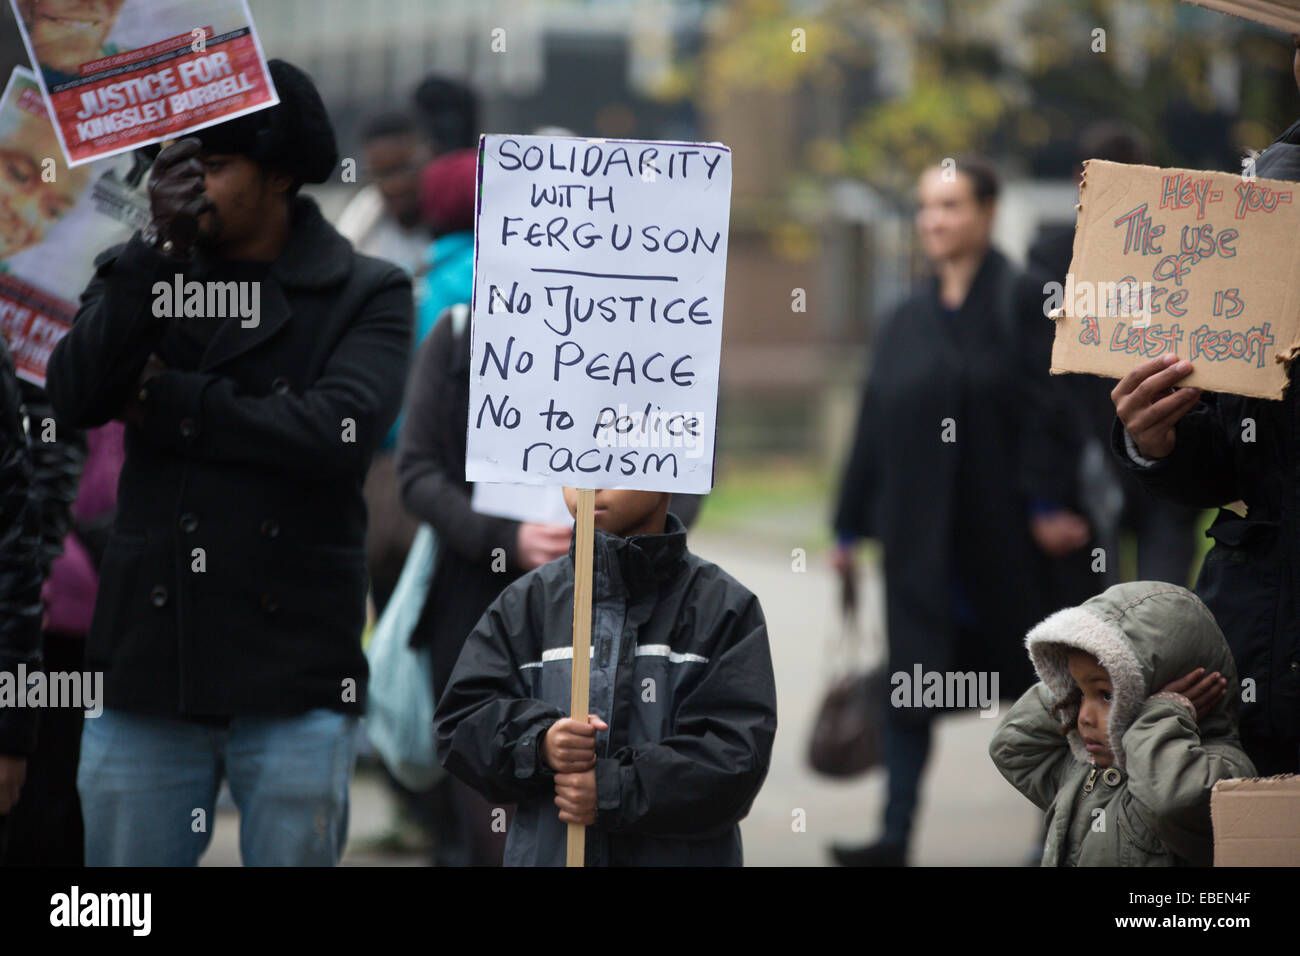 Birmingham, UK. 29 November, 2014. Protesters rally outside Birmingham Cathedral in the City Centre to protest against - Stock Image